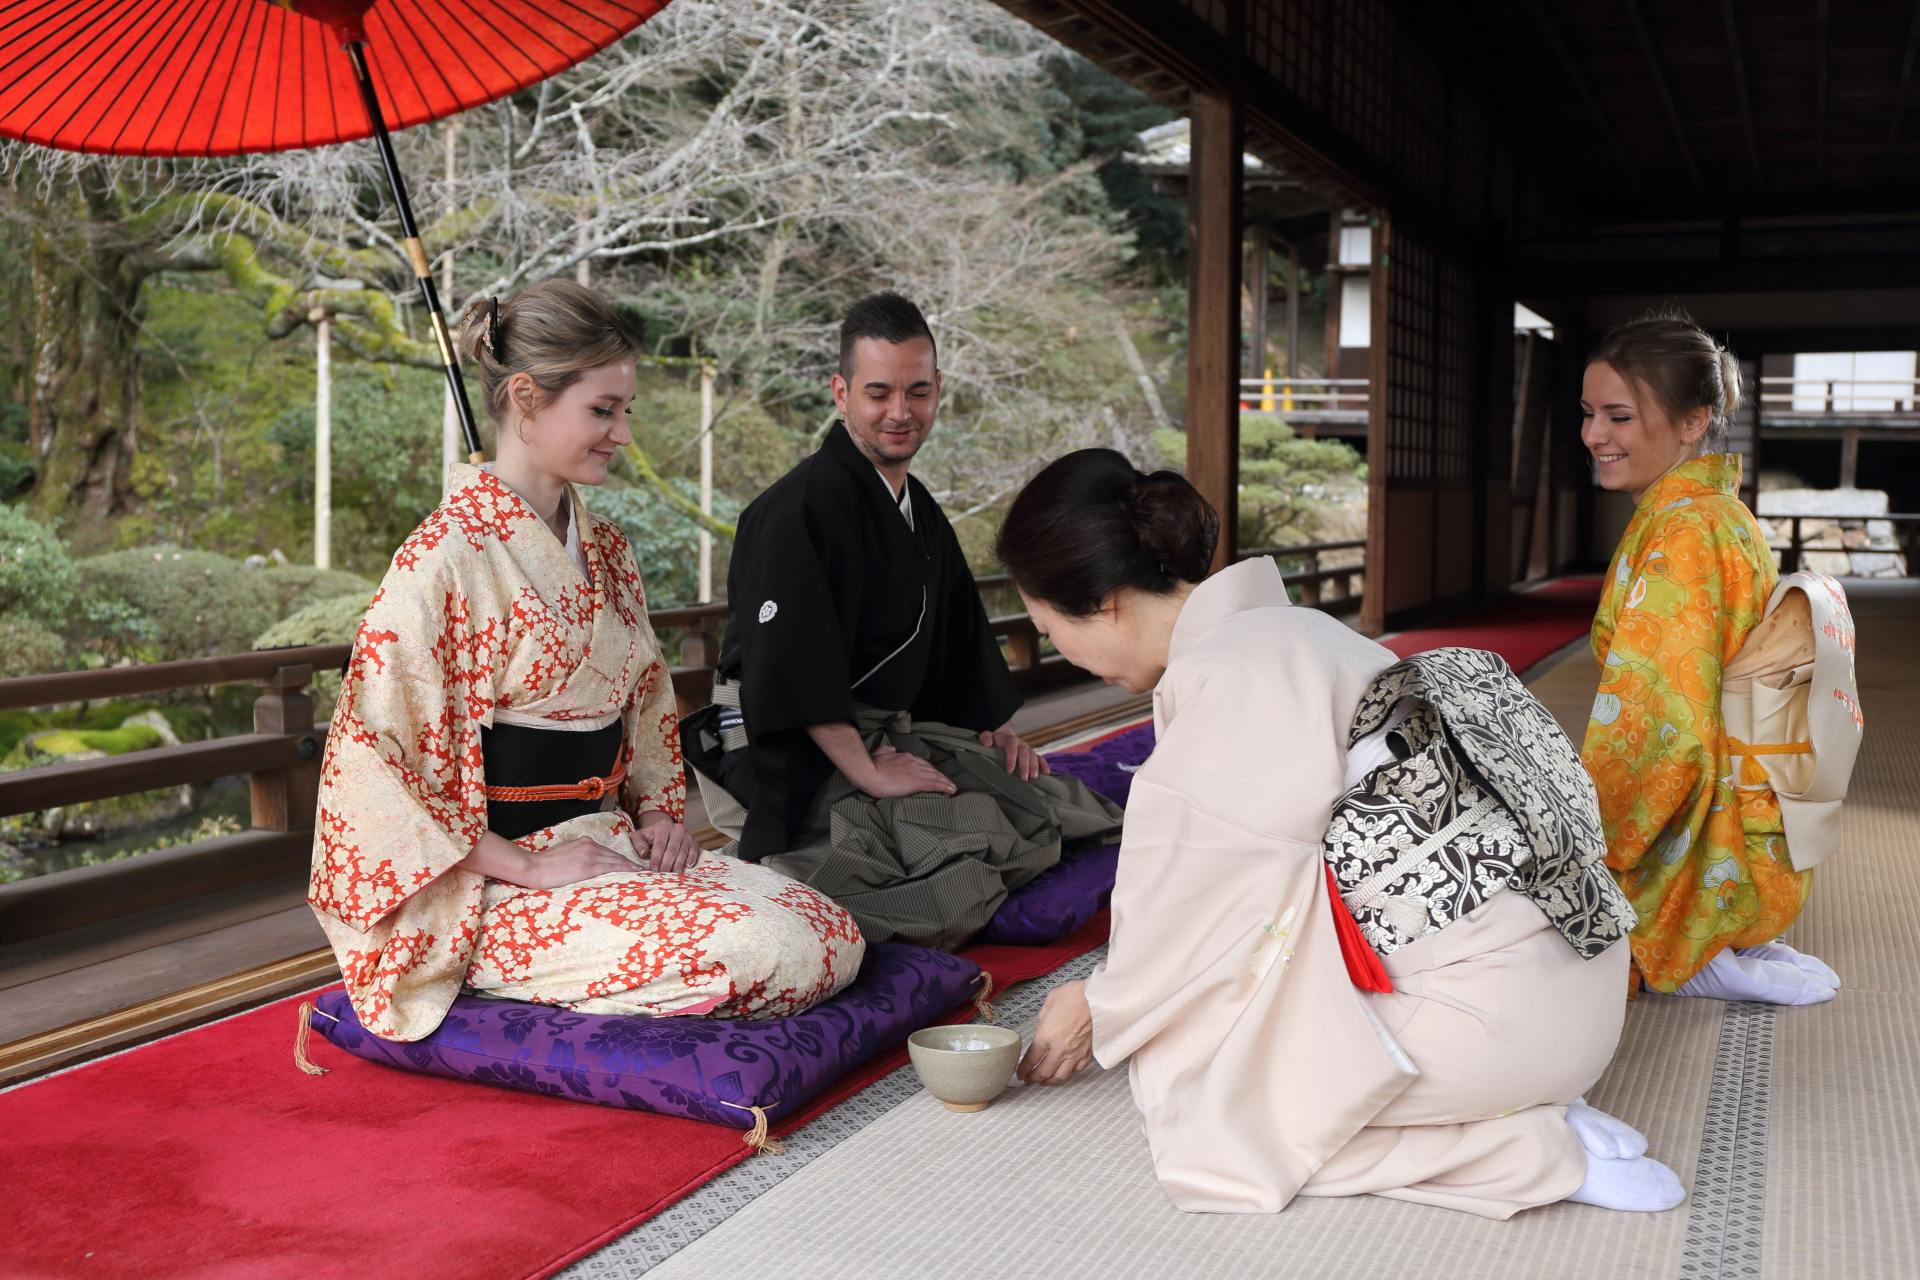 Participating in a tea ceremony allows you to learn how to make tea, as well as partake in matcha green tea and Japanese confections.